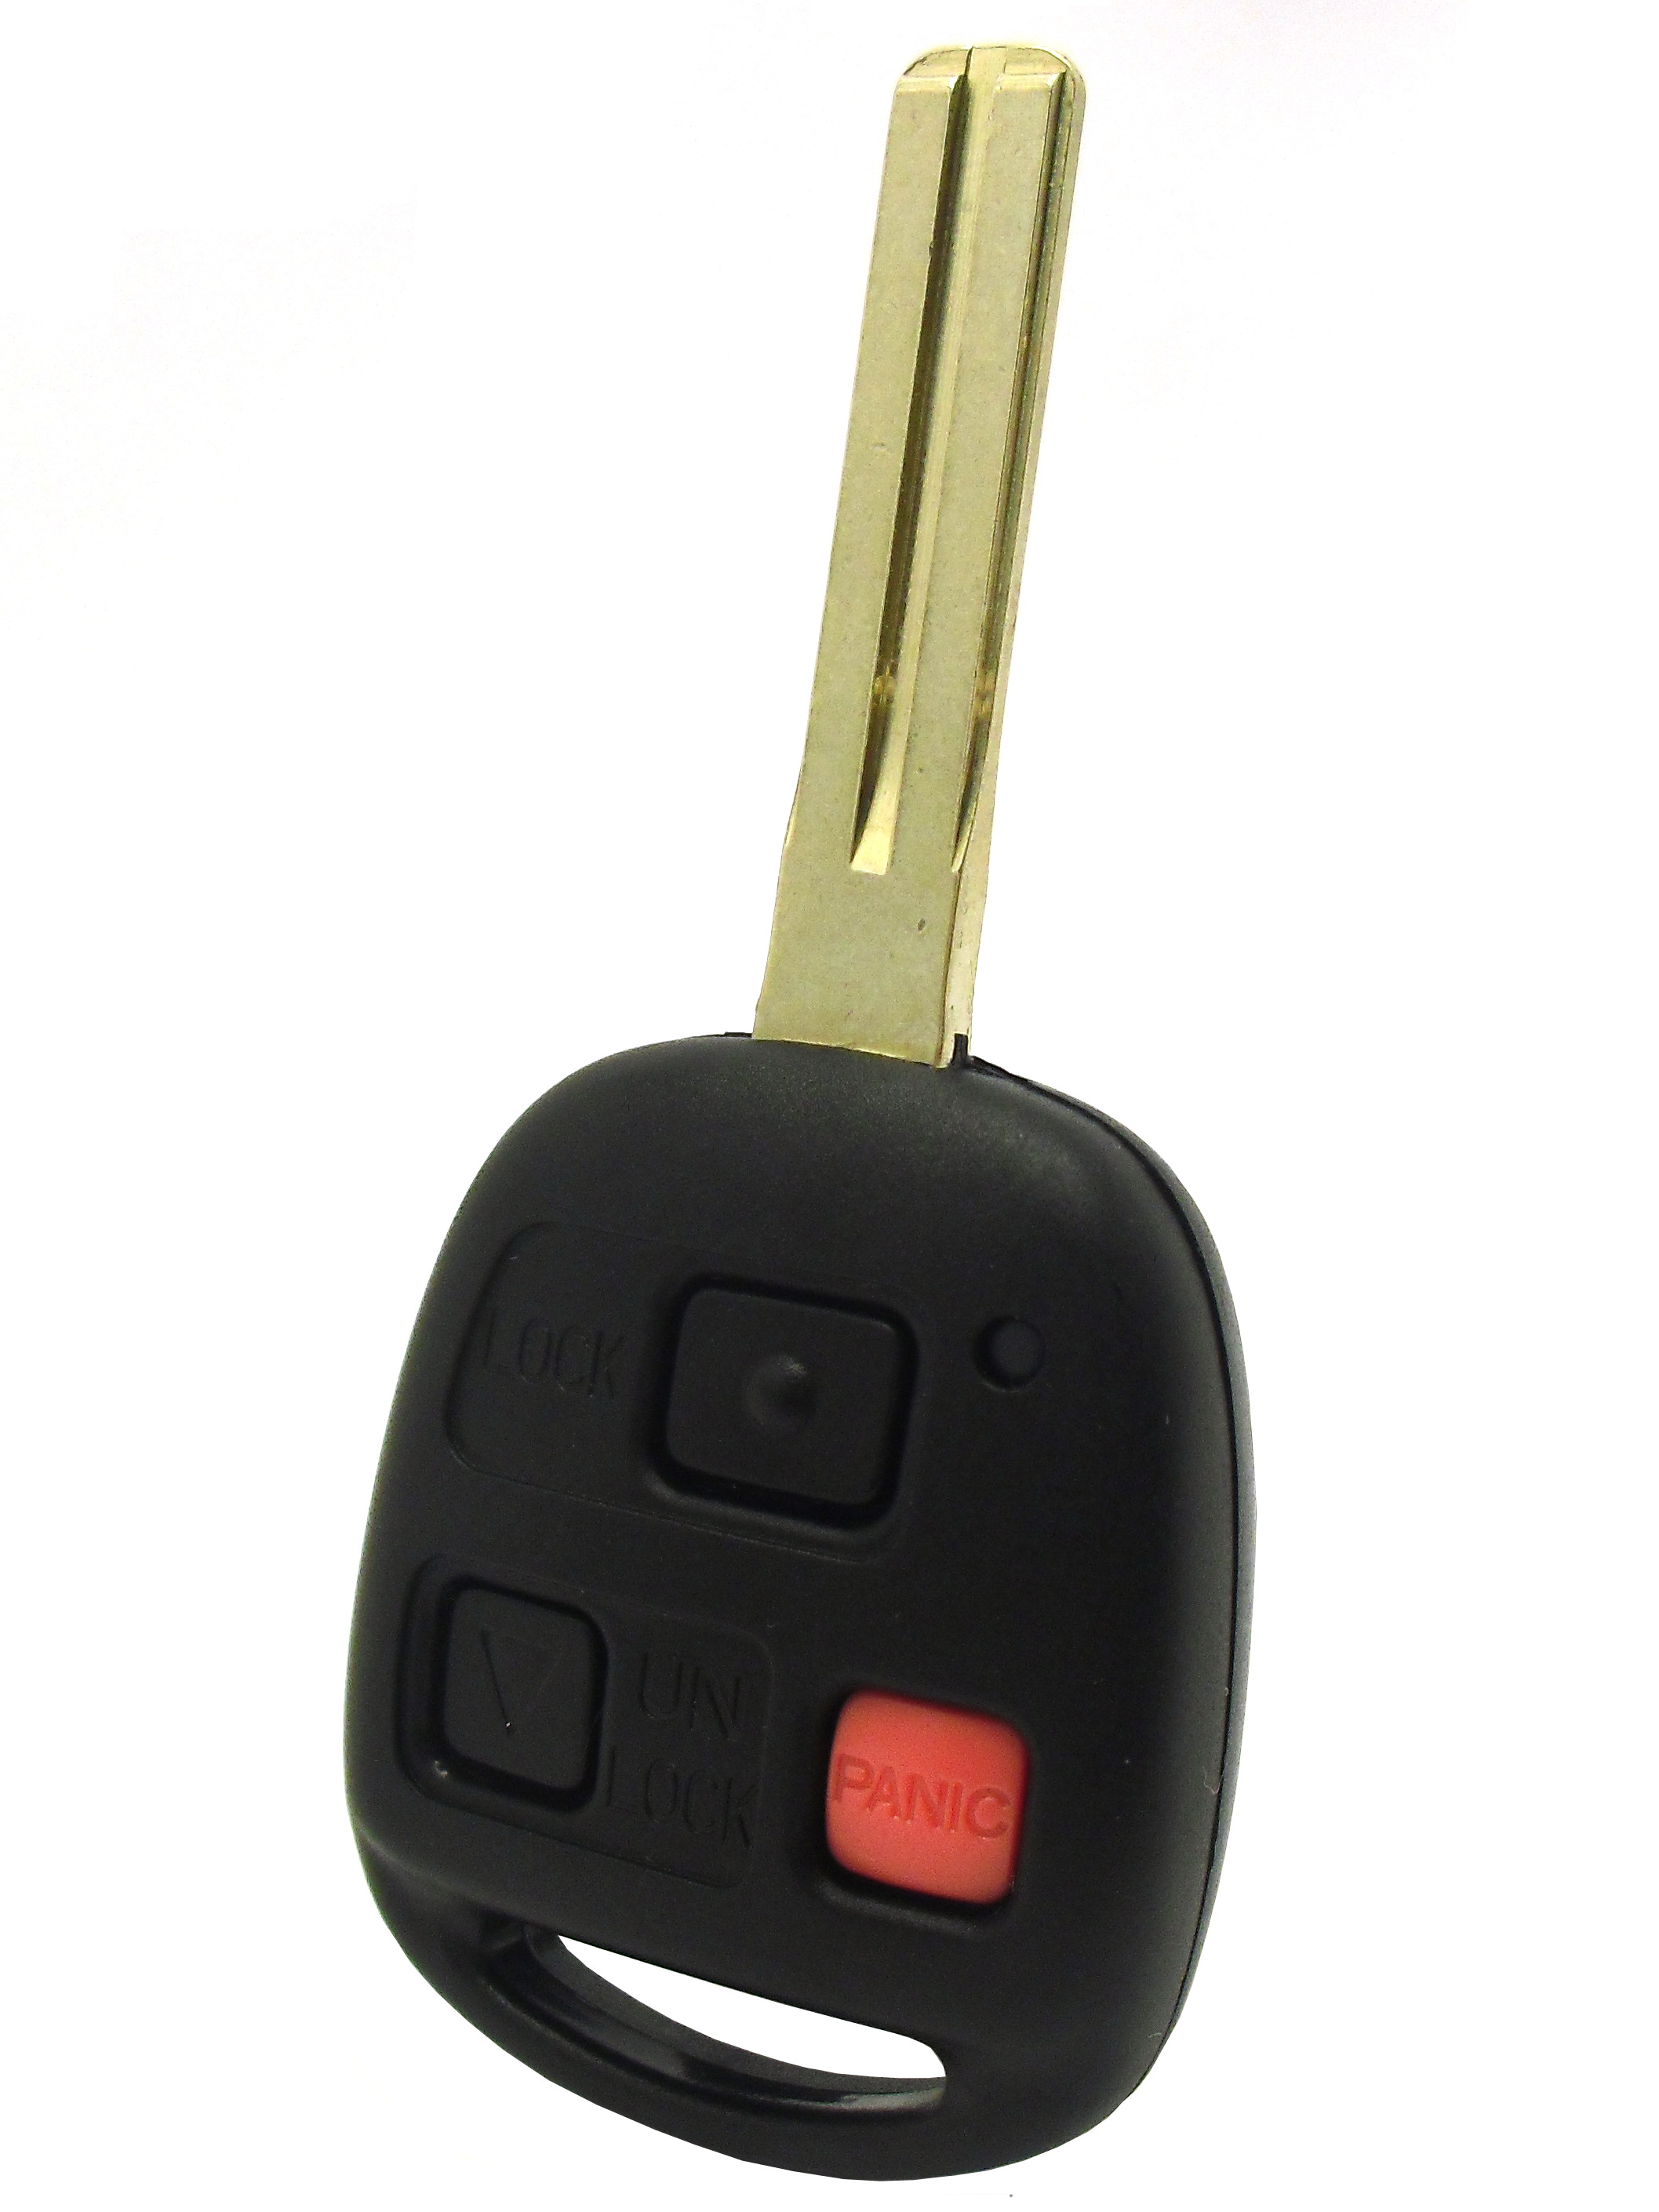 Lexus Remote Key - 3 Button